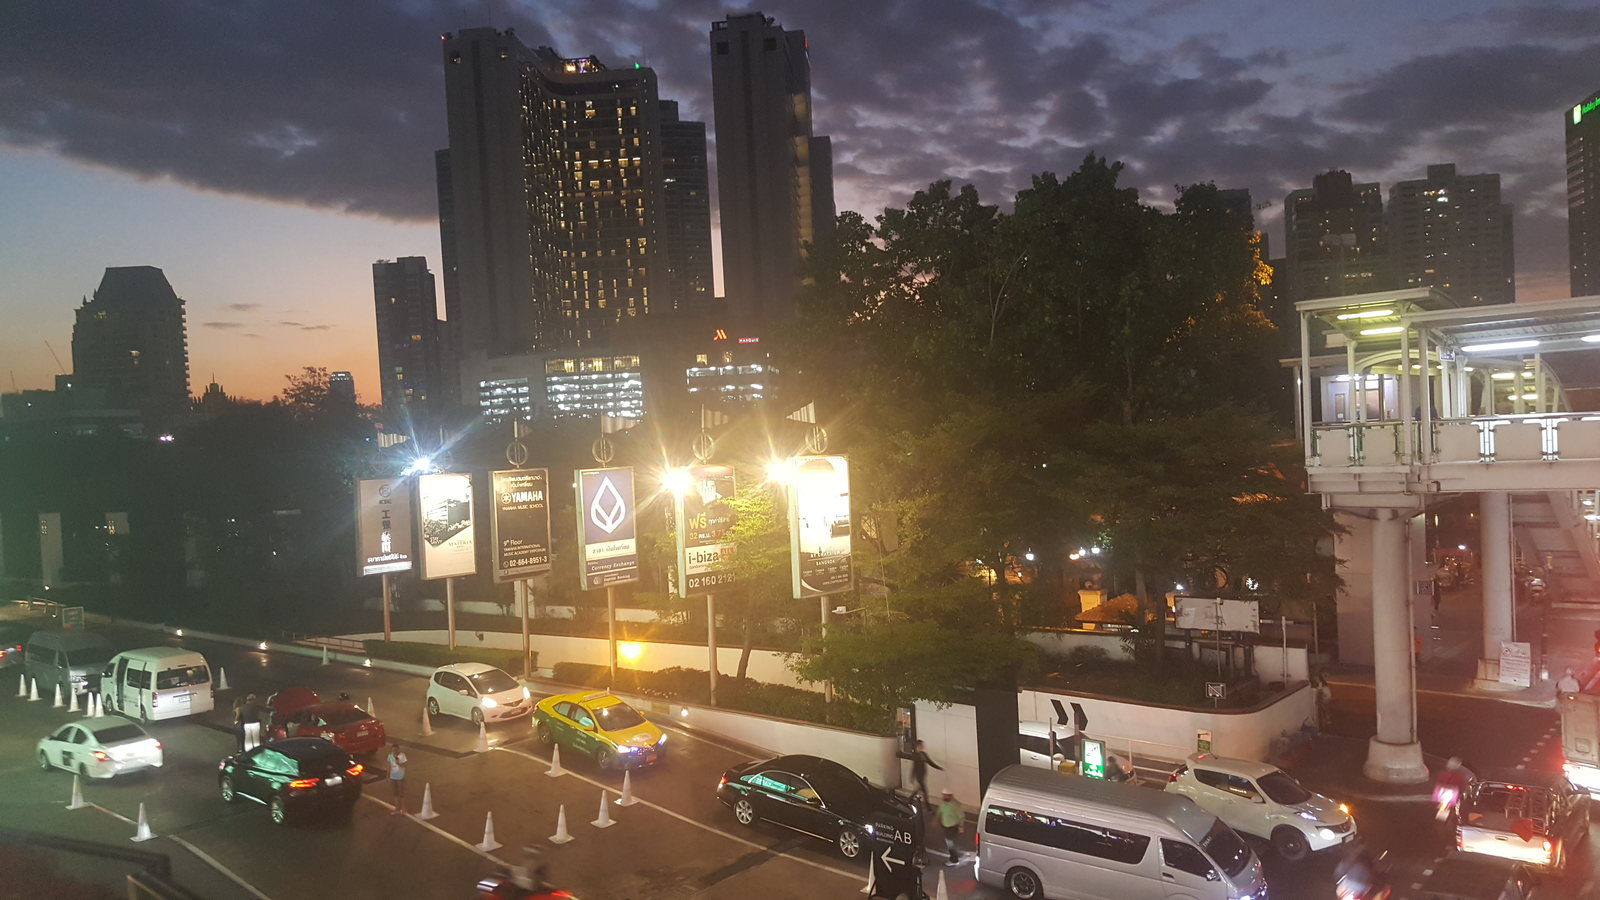 Bangkok - Prompong in the twilight zone